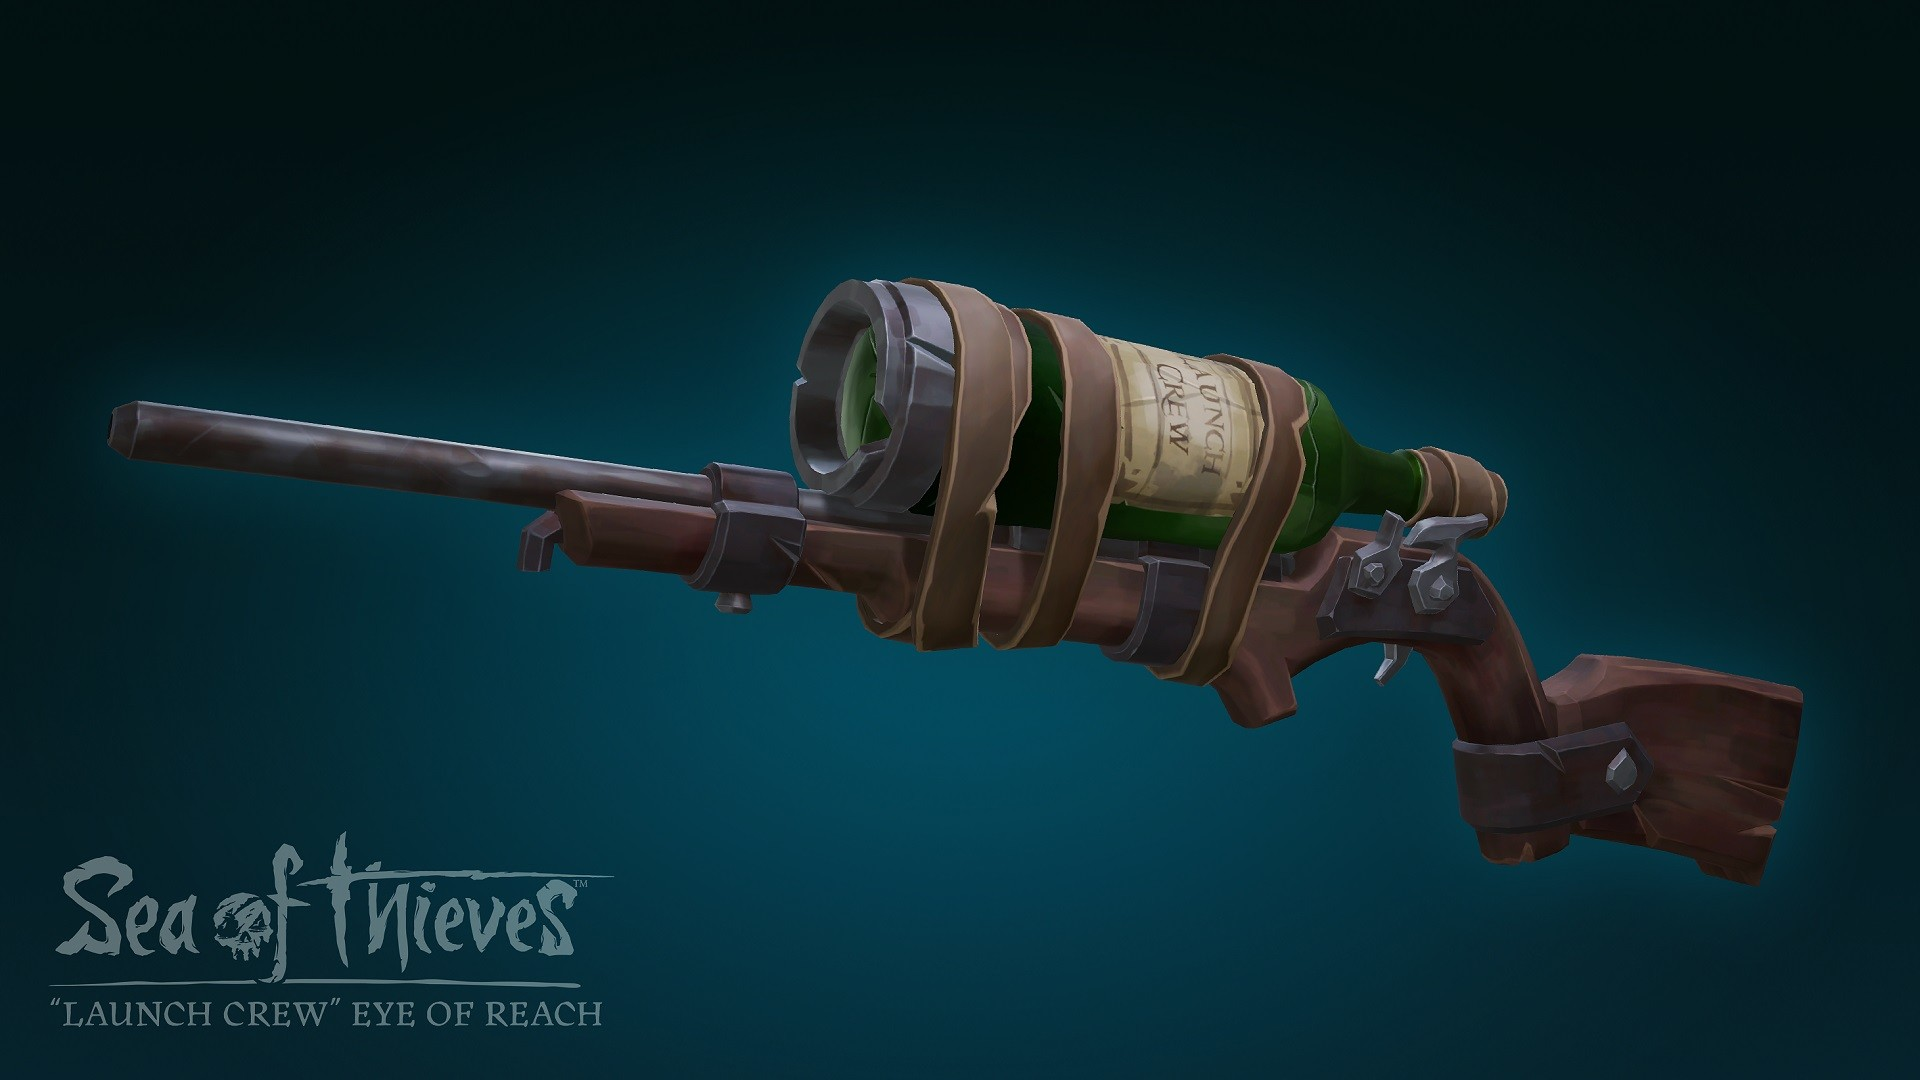 Sea of Thieves 1.06 Update Adds Cosmetics, Weapons, and More